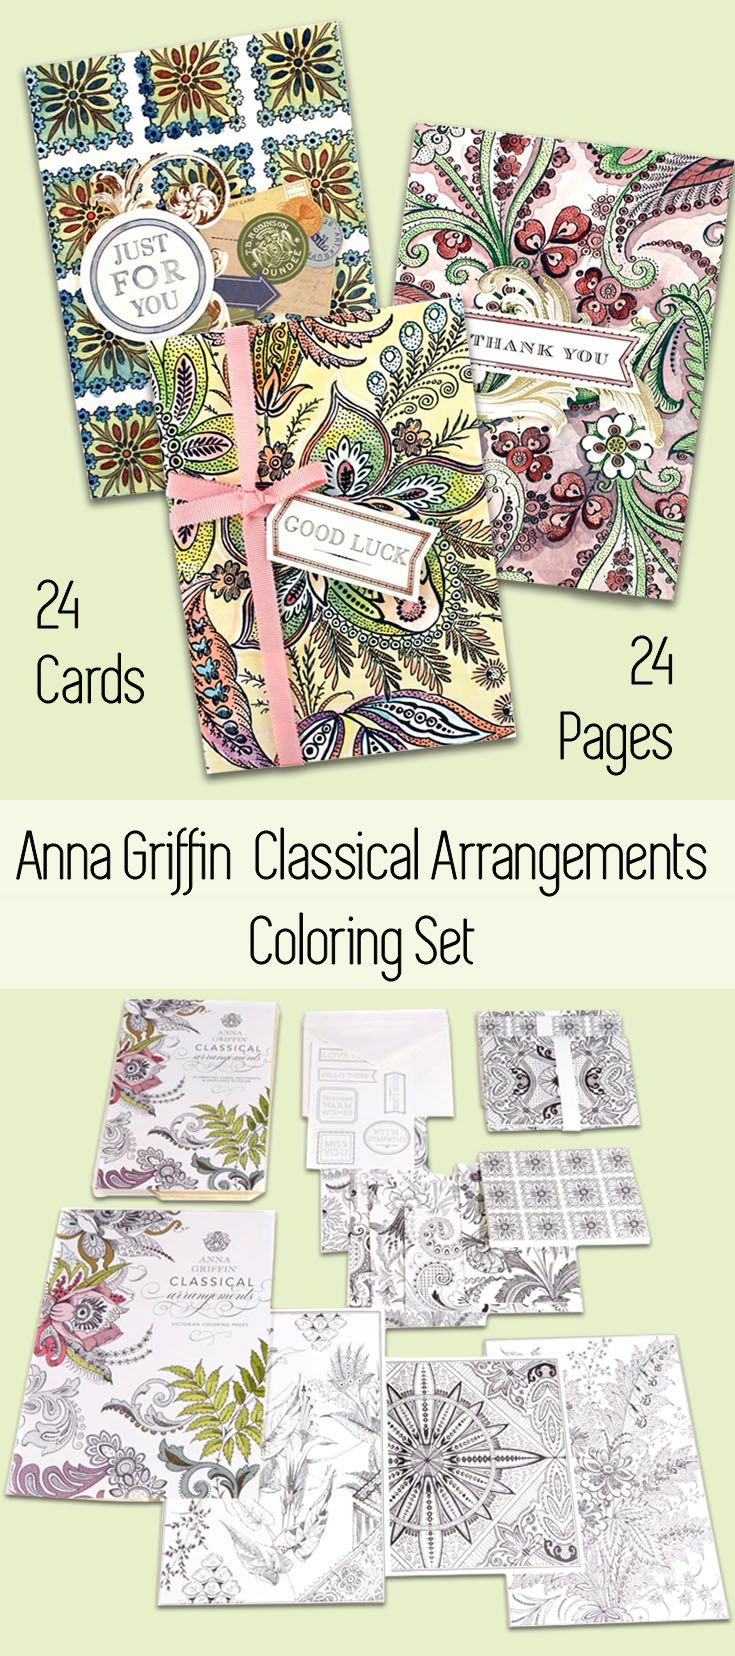 Anna griffin classical arrangements coloring set great gift for